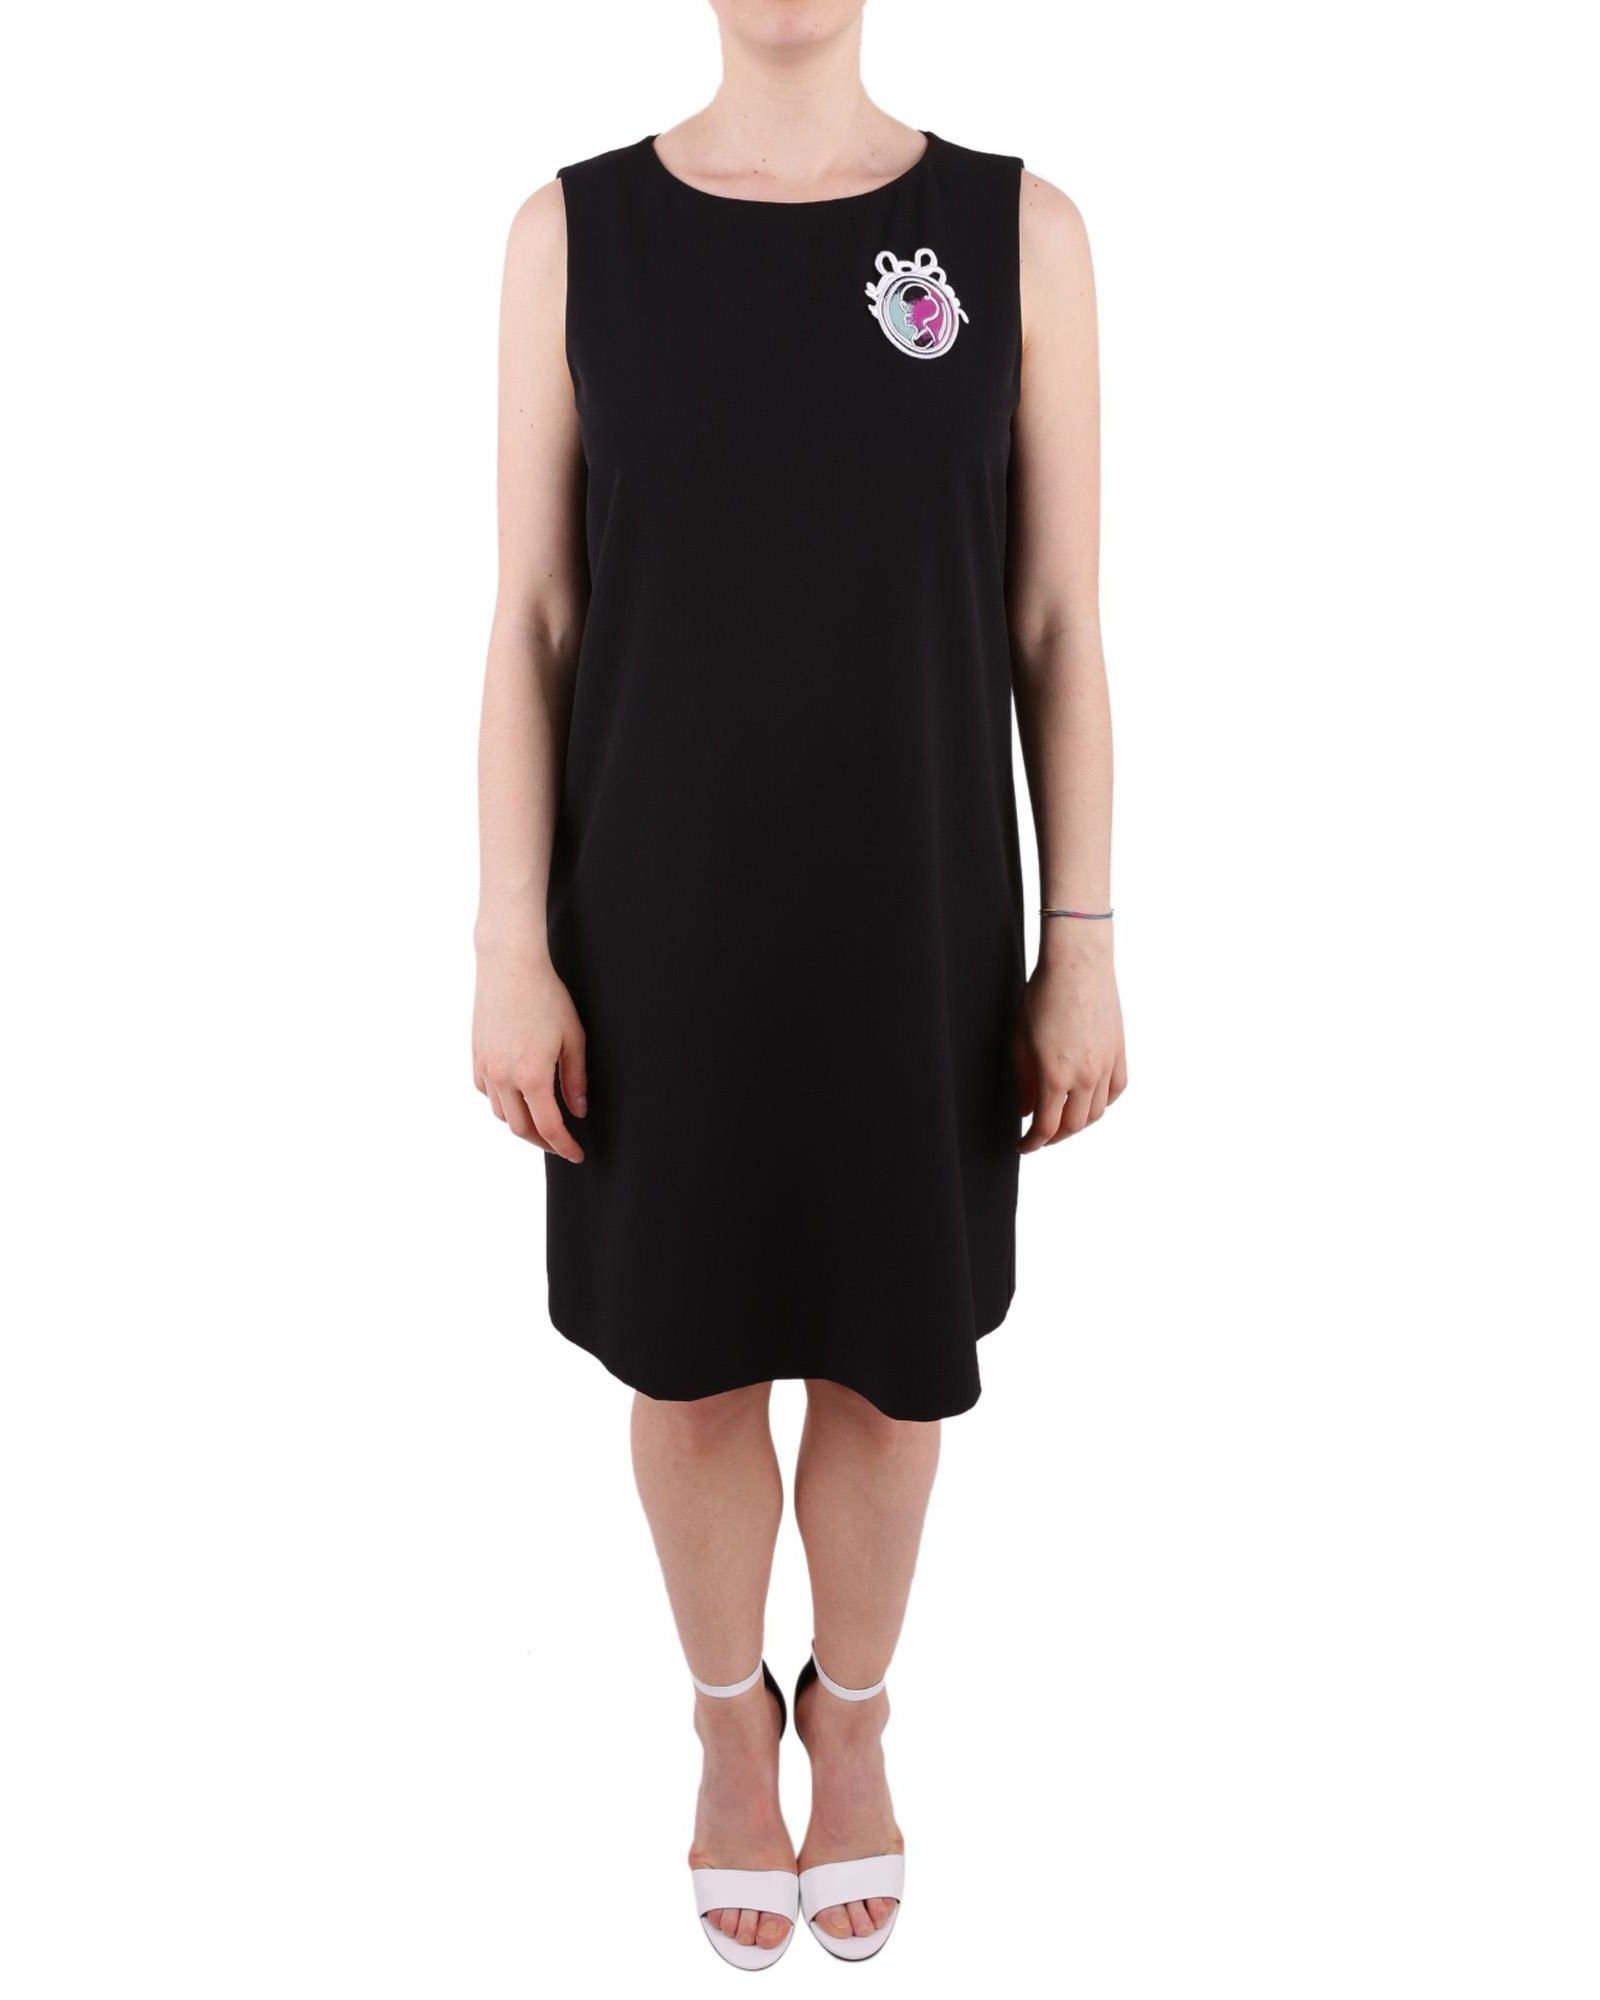 BOUTIQUE MOSCHINO CREPE DRESS